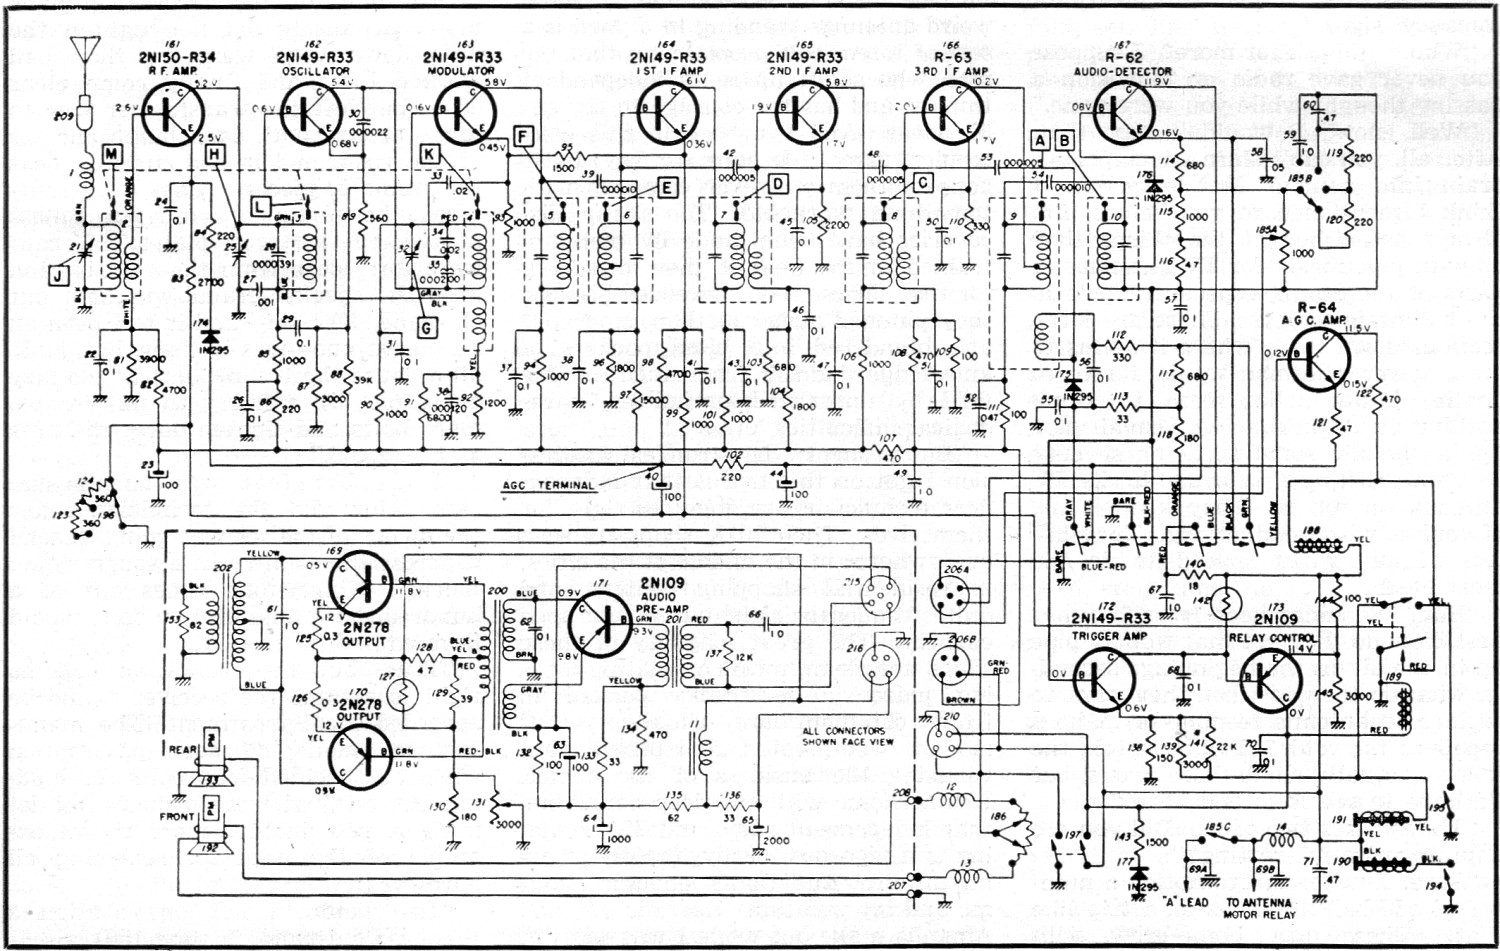 thermistor relay wiring diagram clam internal anatomy delco's all-transistor auto radio, august 1957 radio & tv news - rf cafe